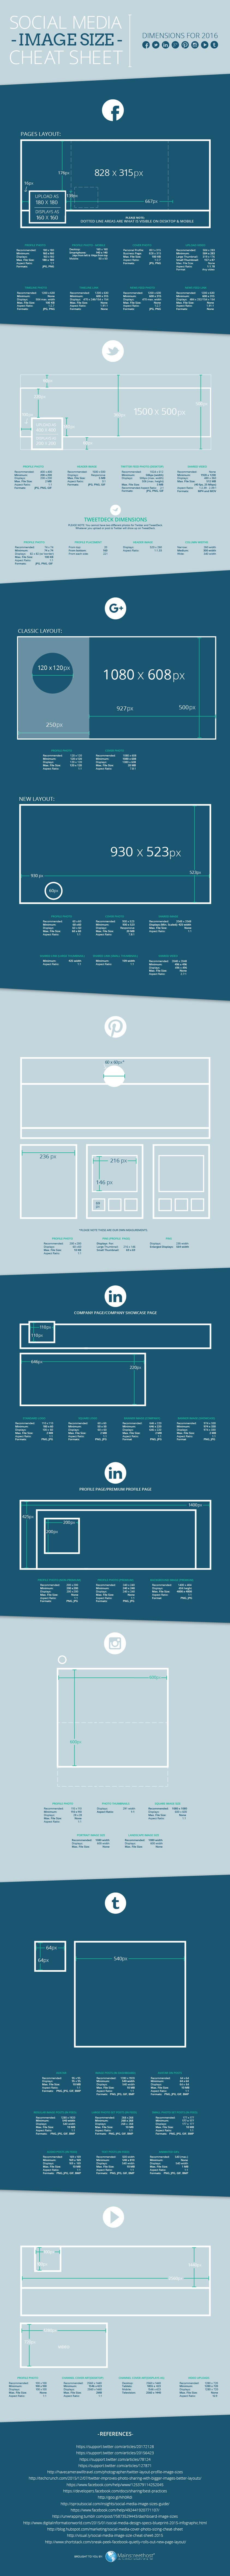 2016 Social Media Image Size Cheat Sheet Infographic